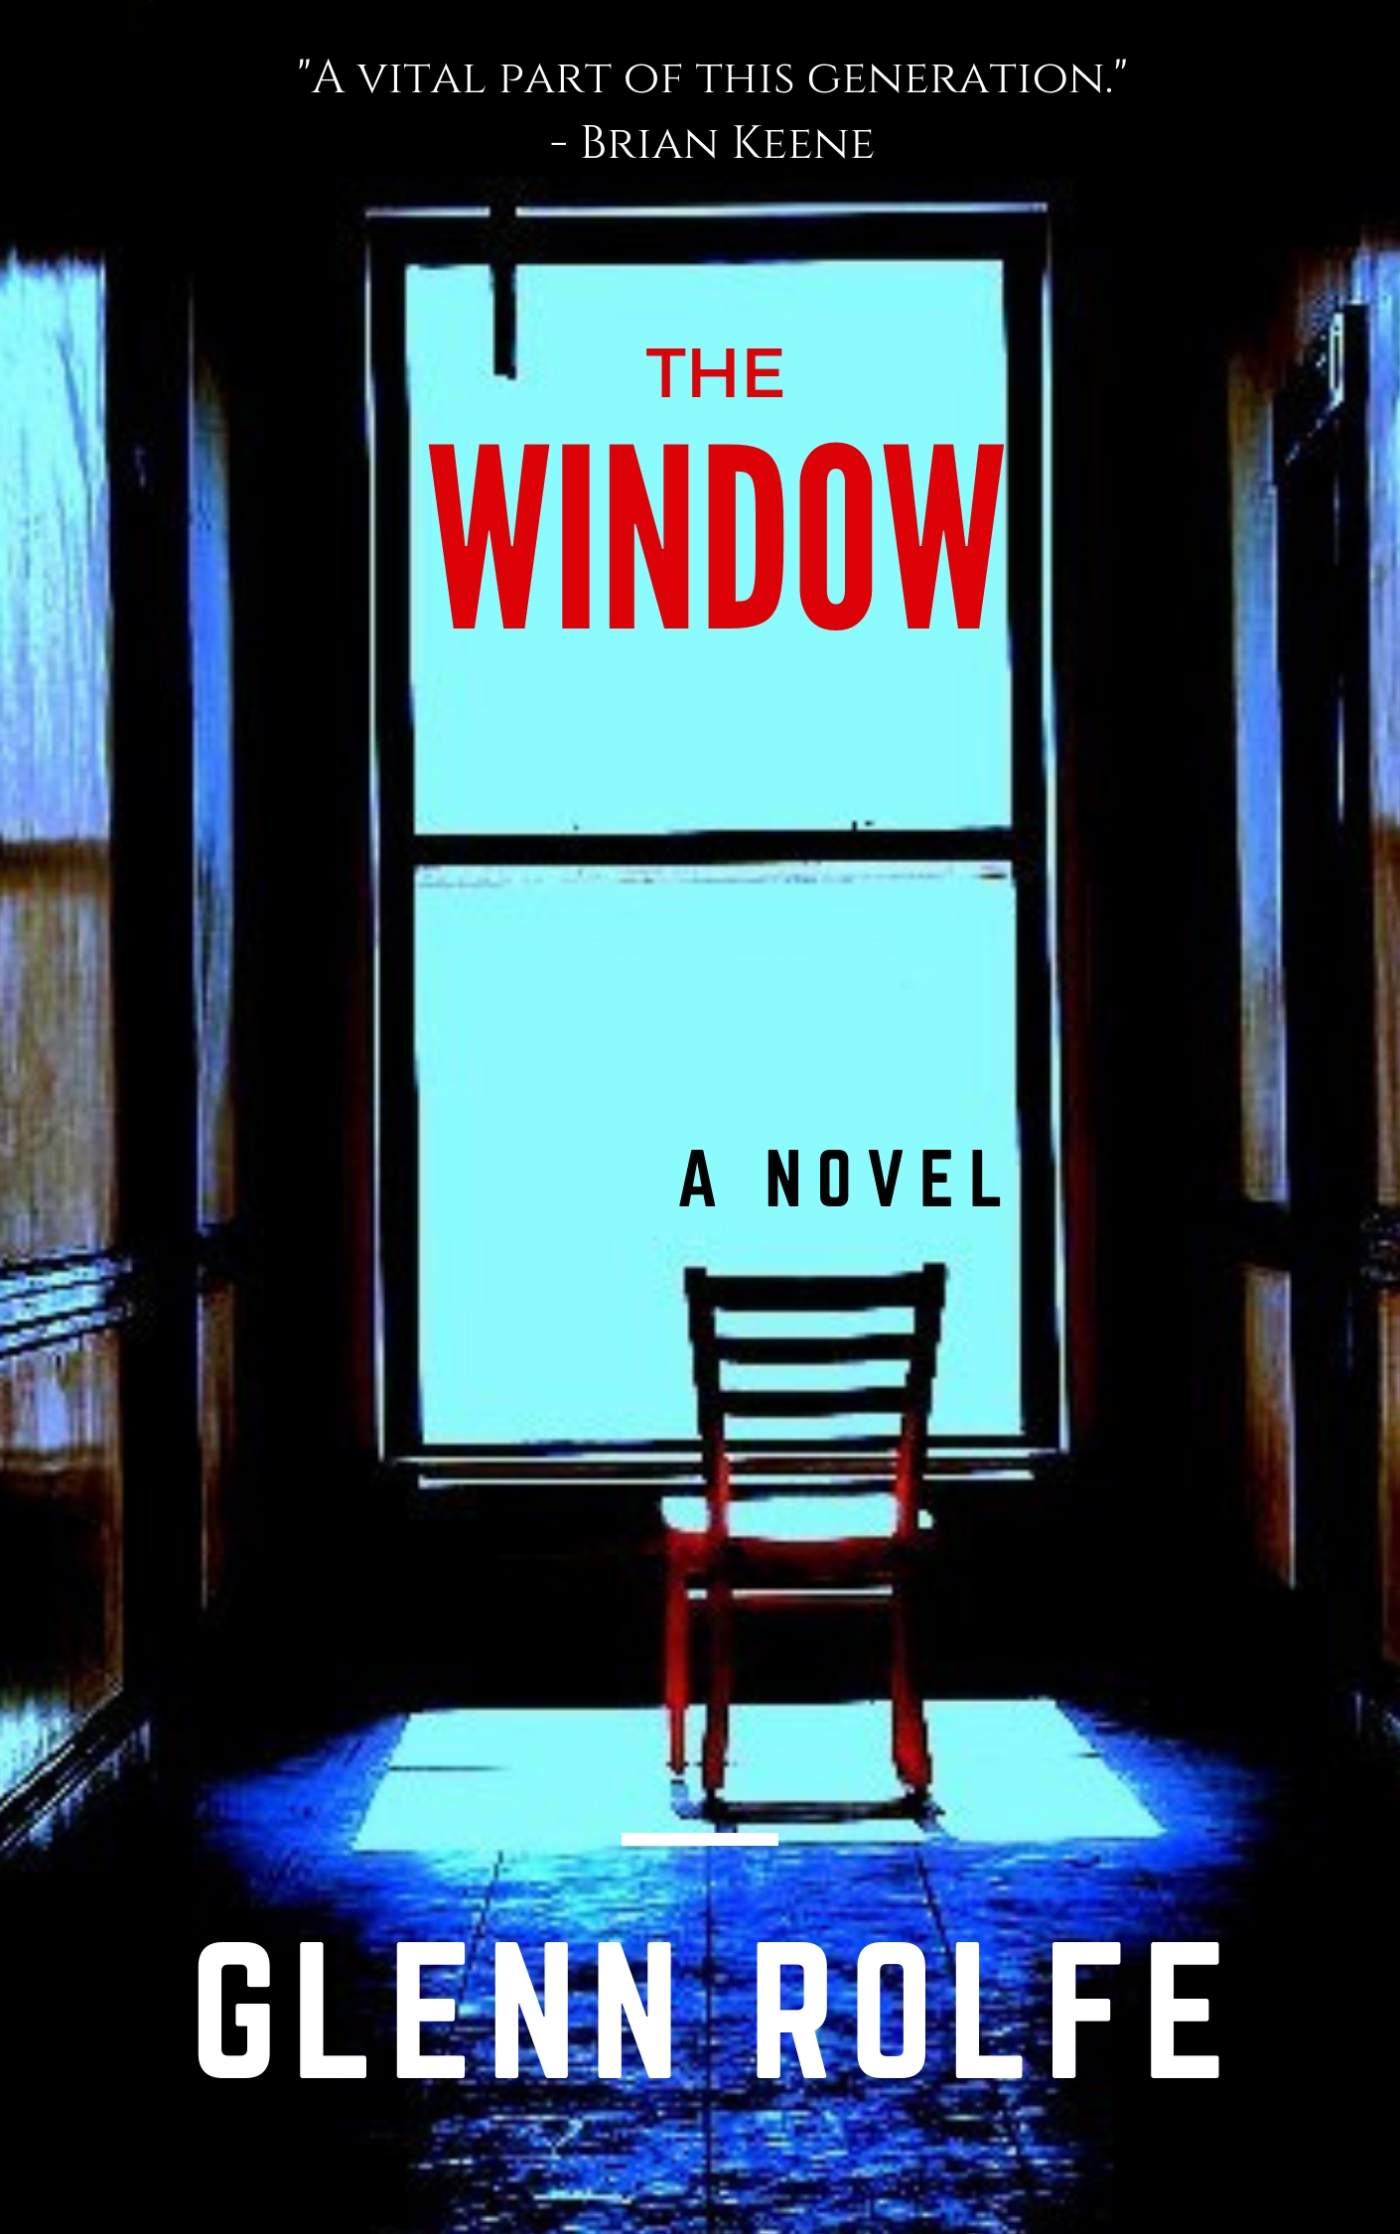 The Window_Glenn Rolfe.jpg